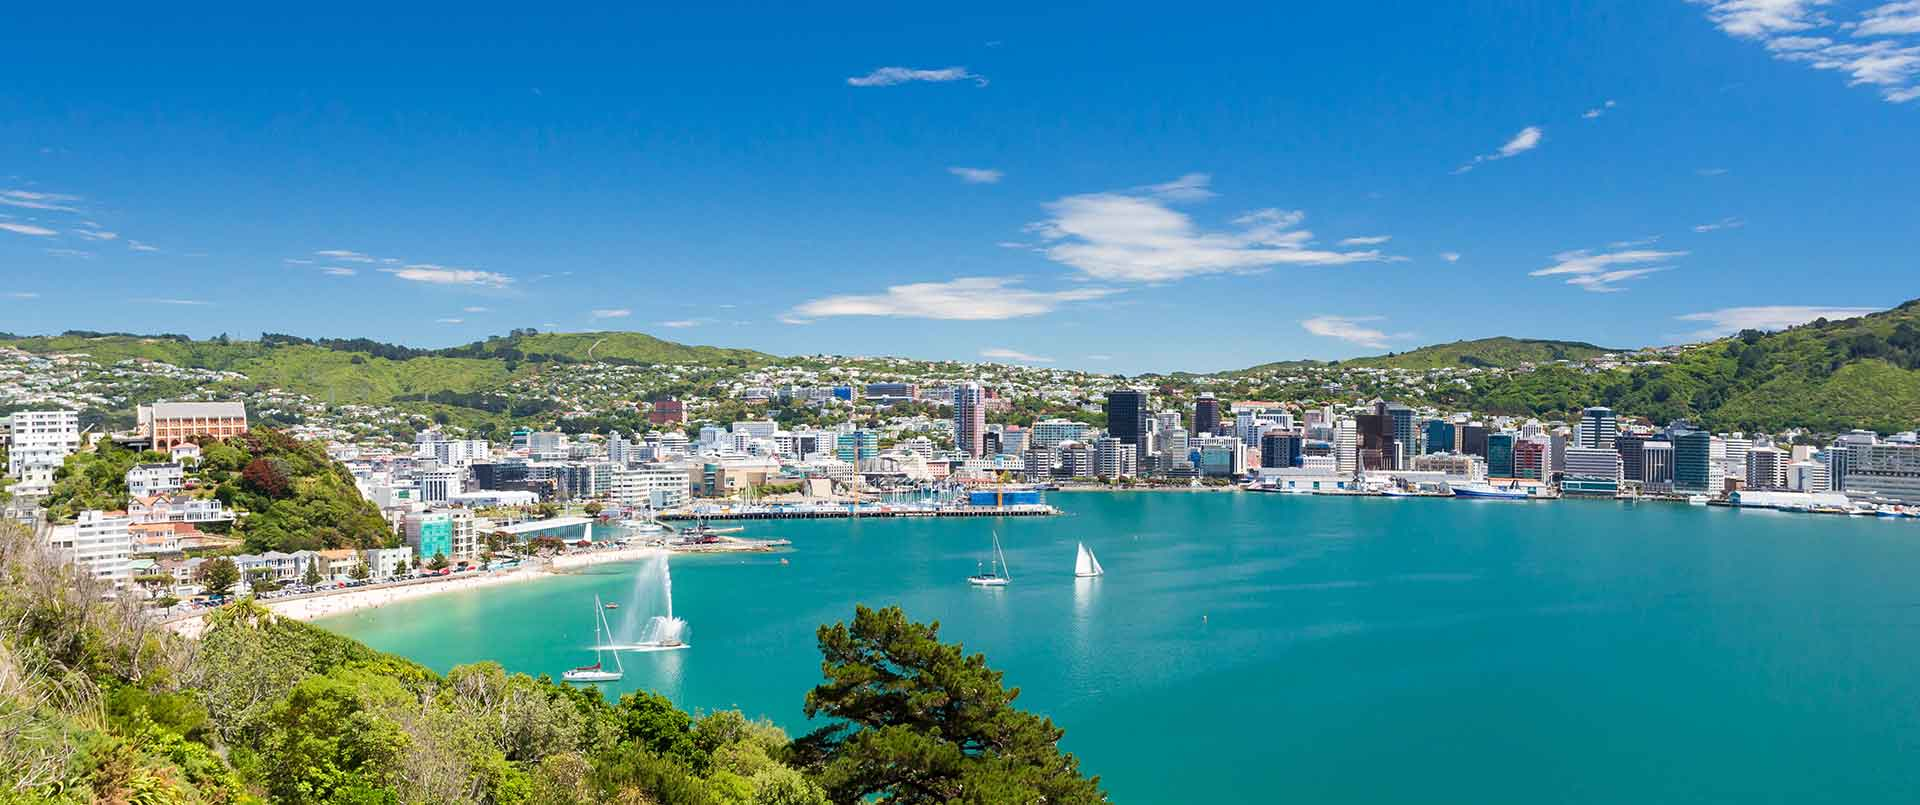 New Zealand – The South Island